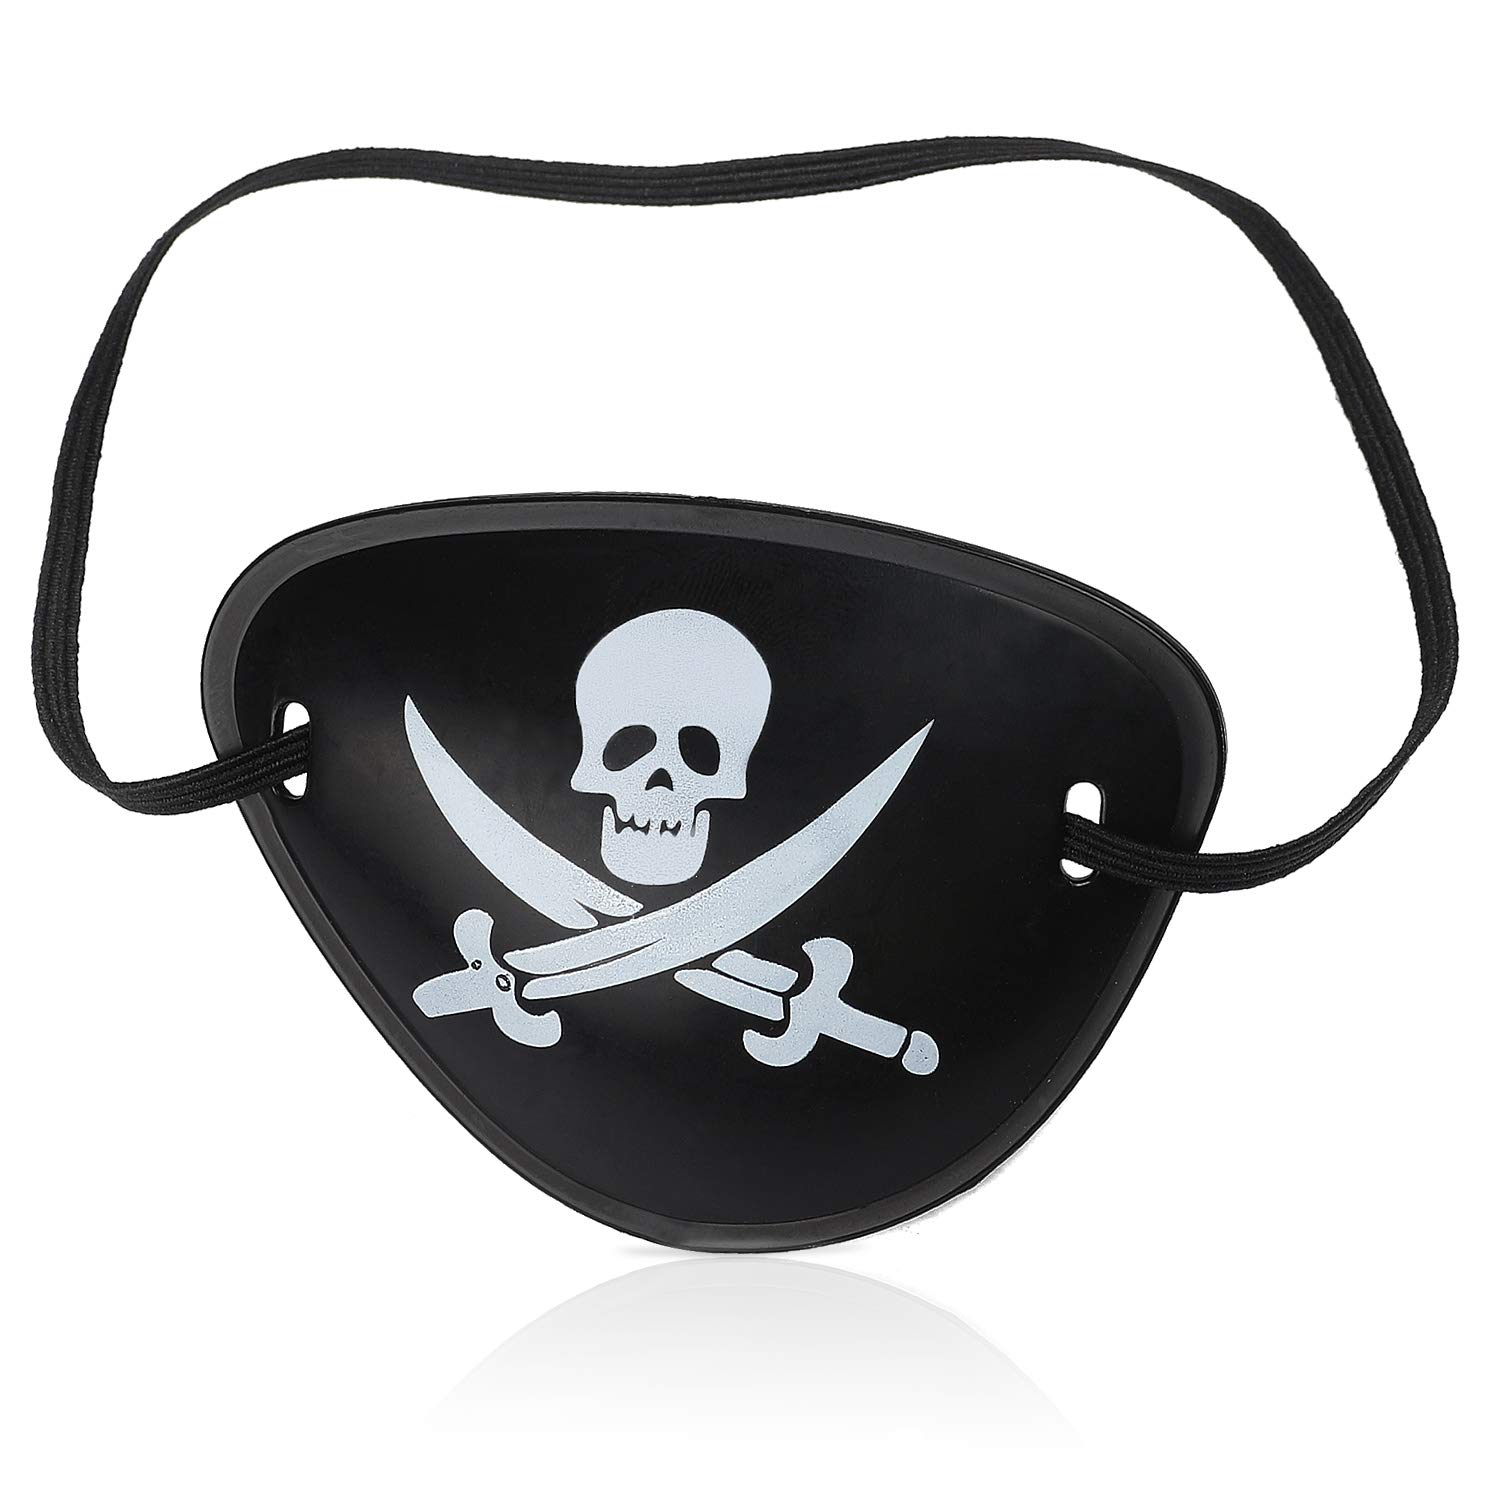 Beelittle Captain Pirate Costume Accessories Set Red Headband Pirate Skull Eye Patch Gold Earrring Necklace